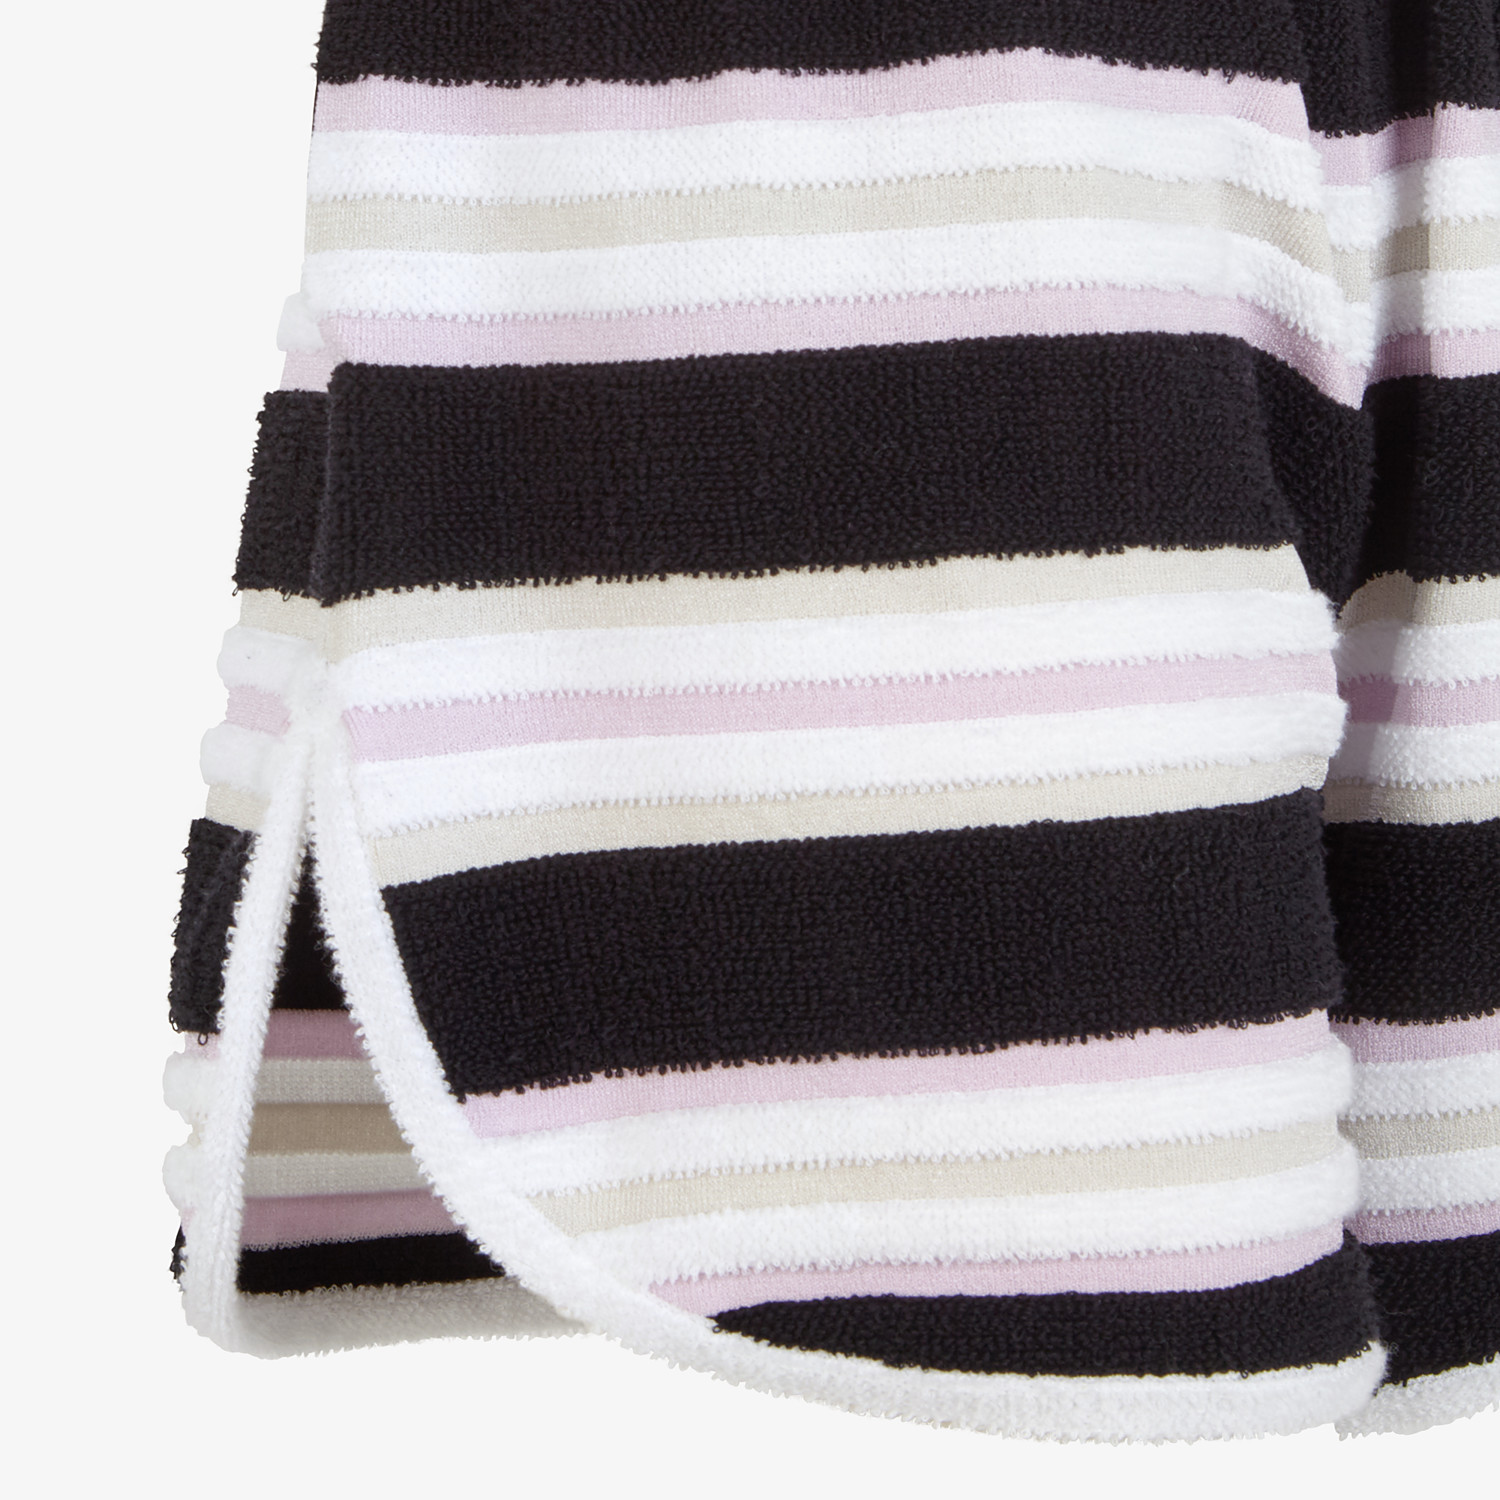 FENDI SHORTS - Multicolor cotton shorts - view 3 detail